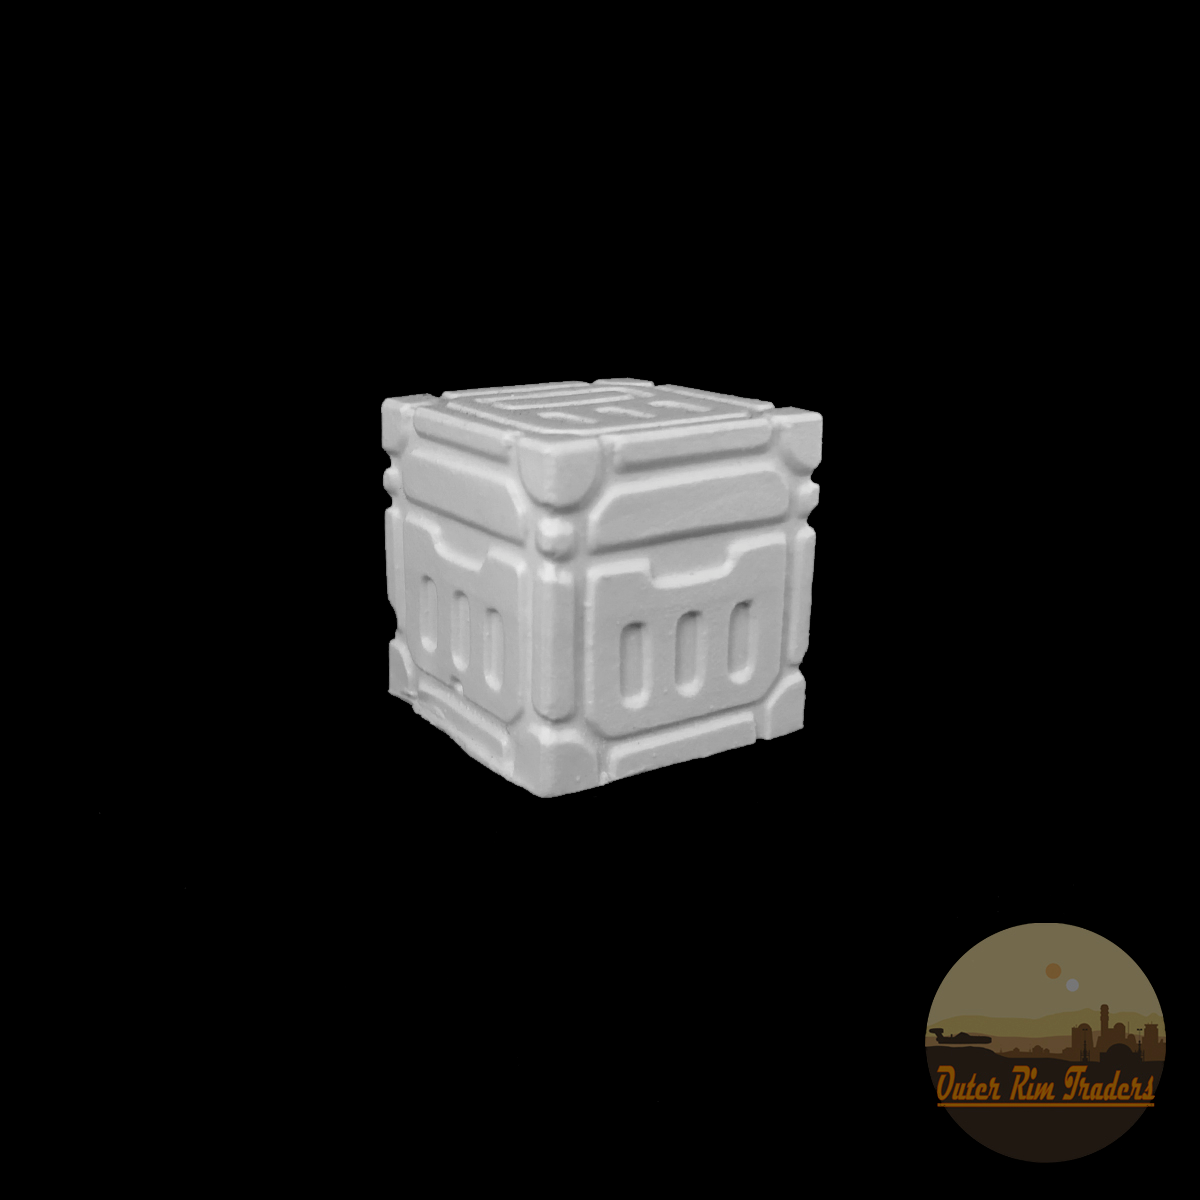 Image of Ammo Cube